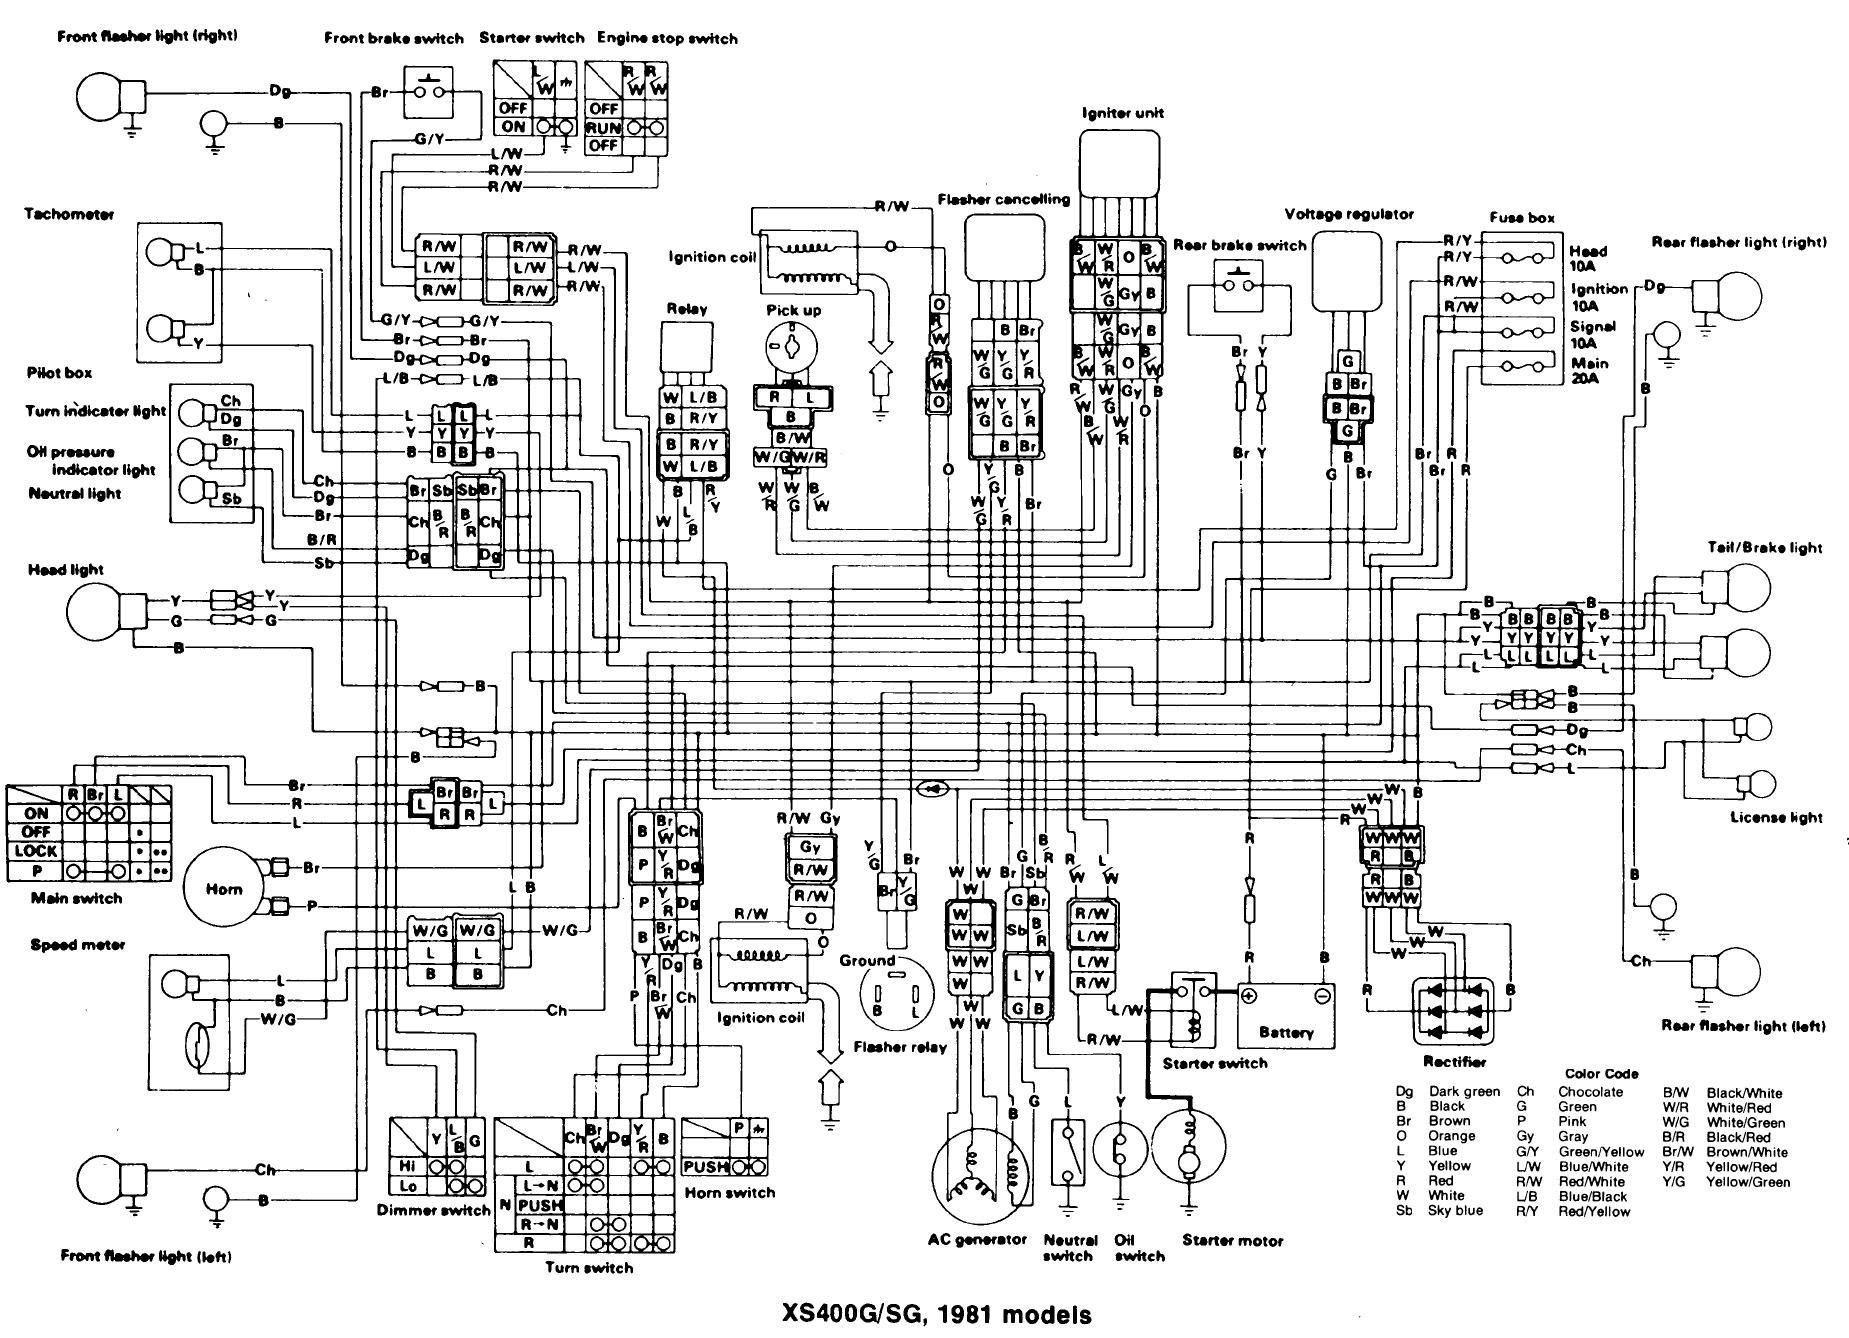 yamaha xs1100 engine diagram yamaha wiring diagrams online